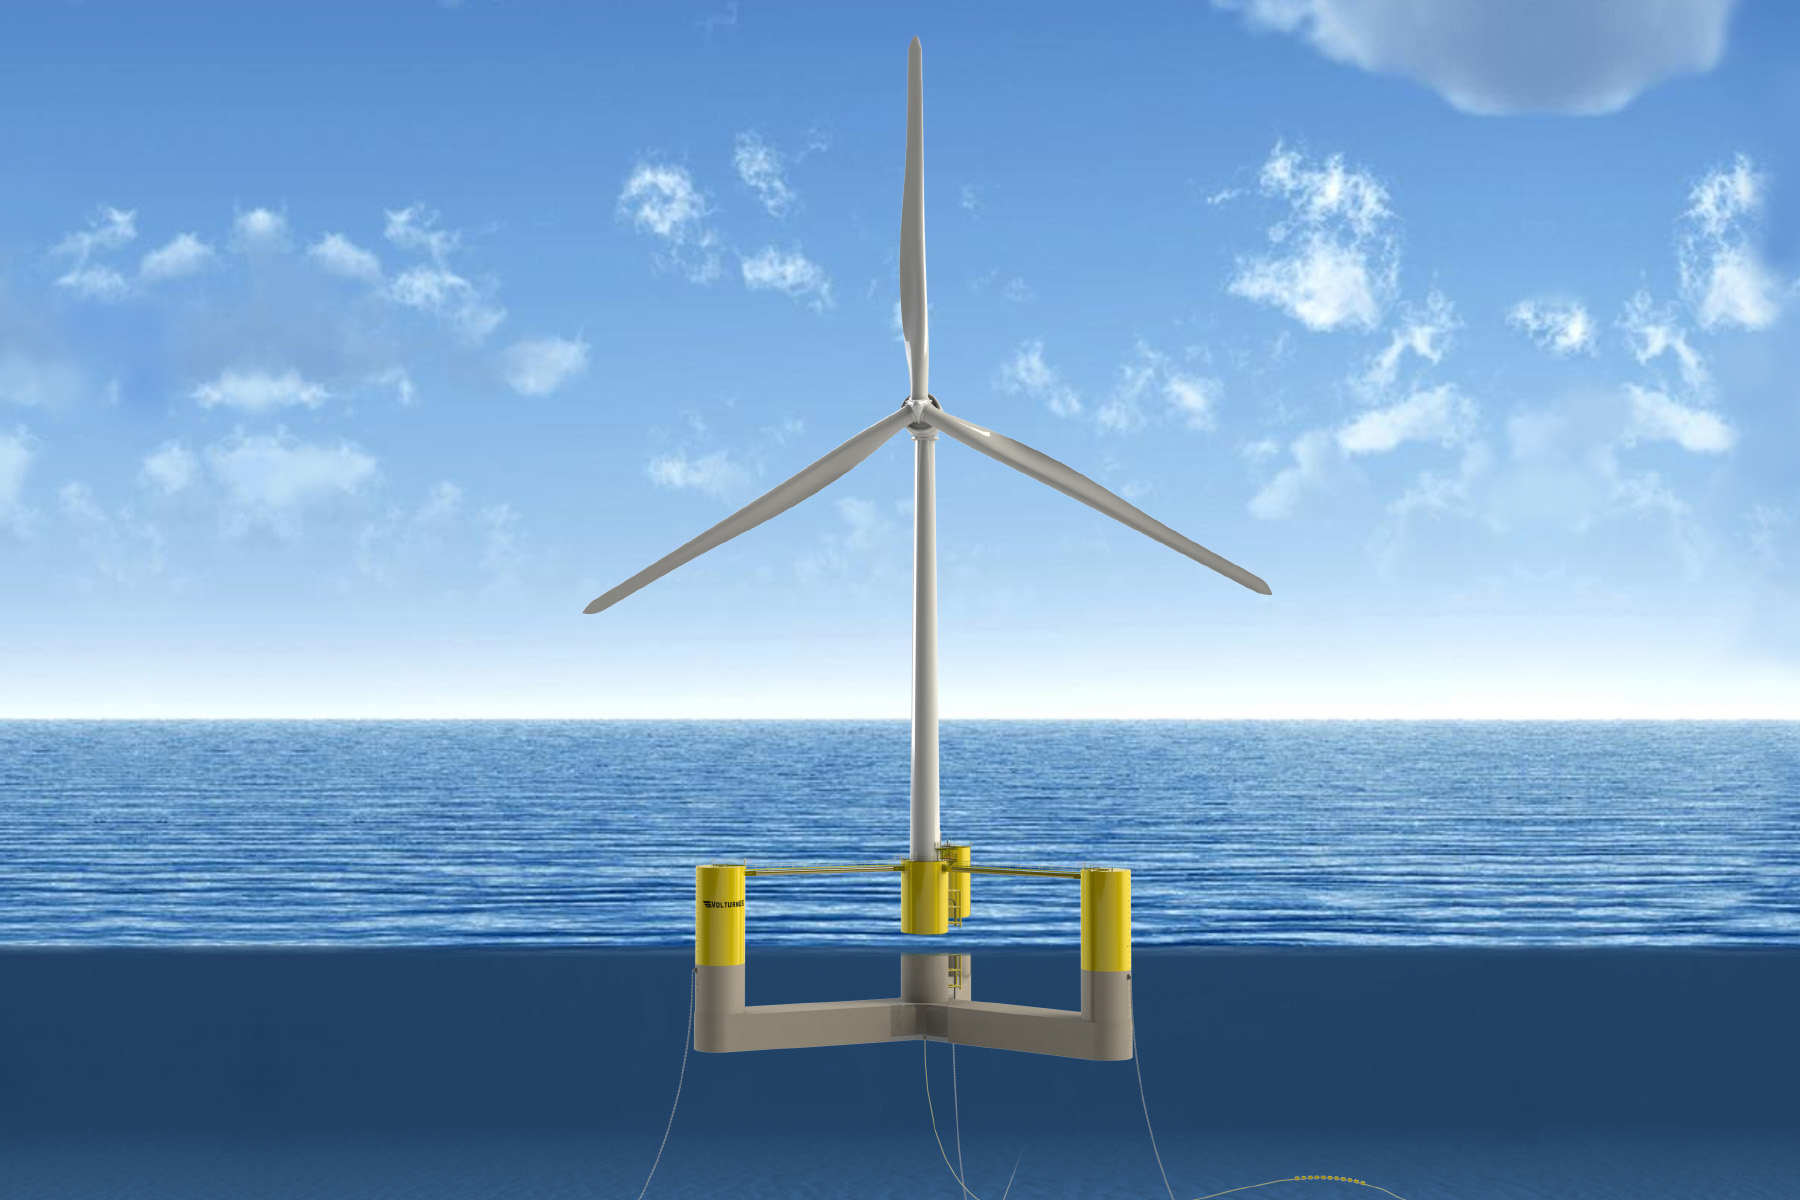 featured image for Diamond Offshore Wind, RWE Renewables join the University of Maine to lead development of Maine floating offshore wind demonstration project